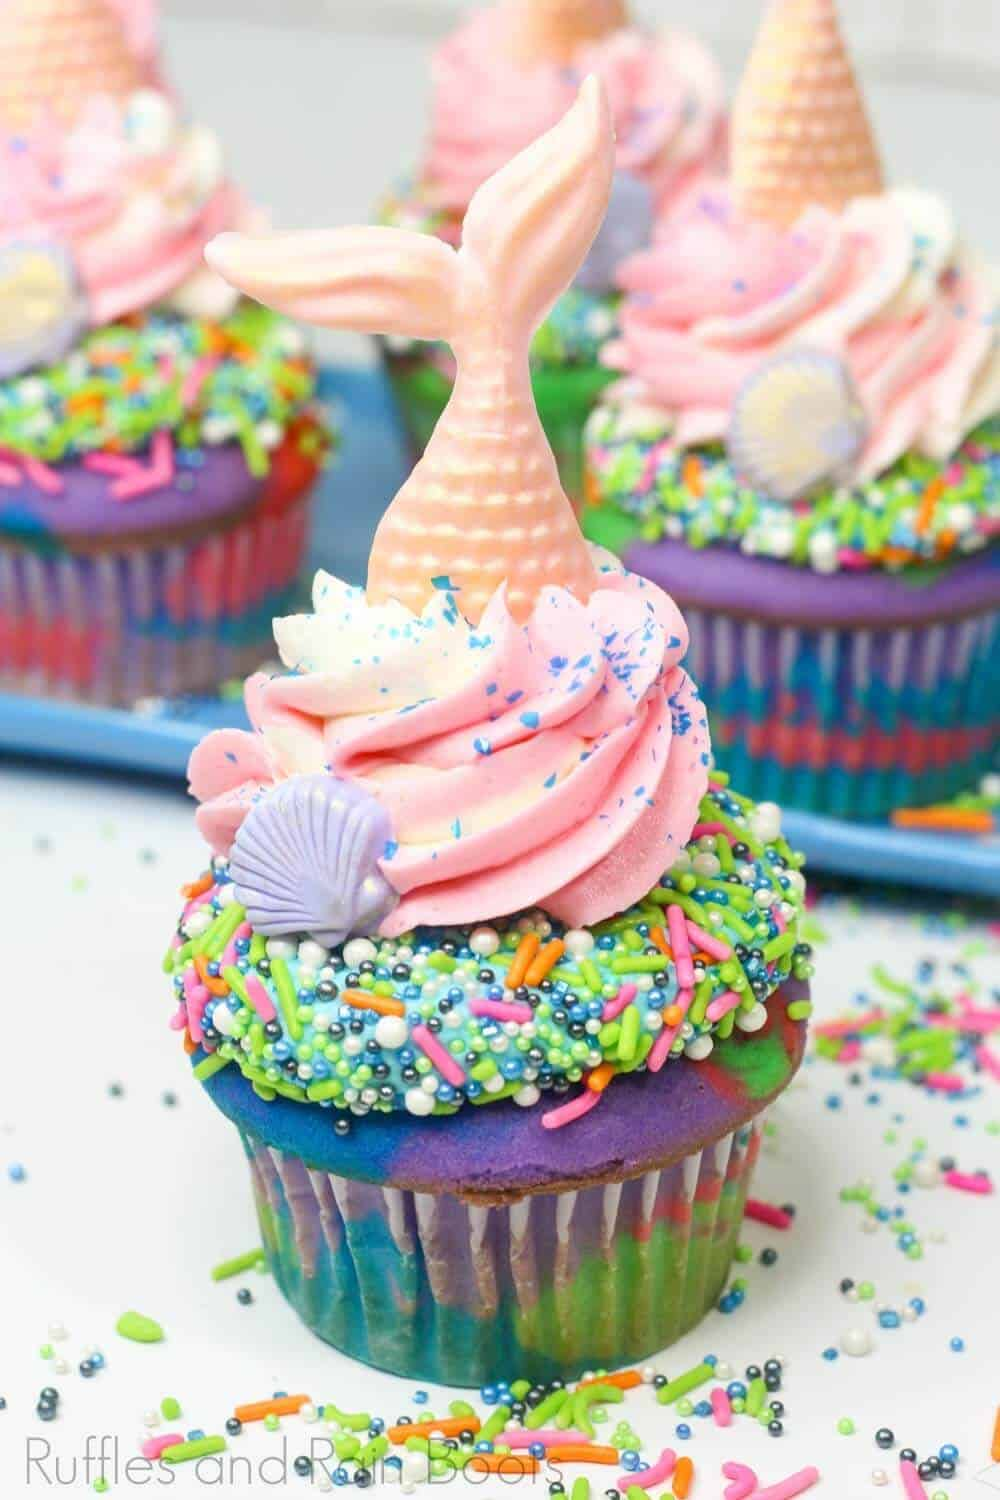 mermaid cupcake recipe for a party